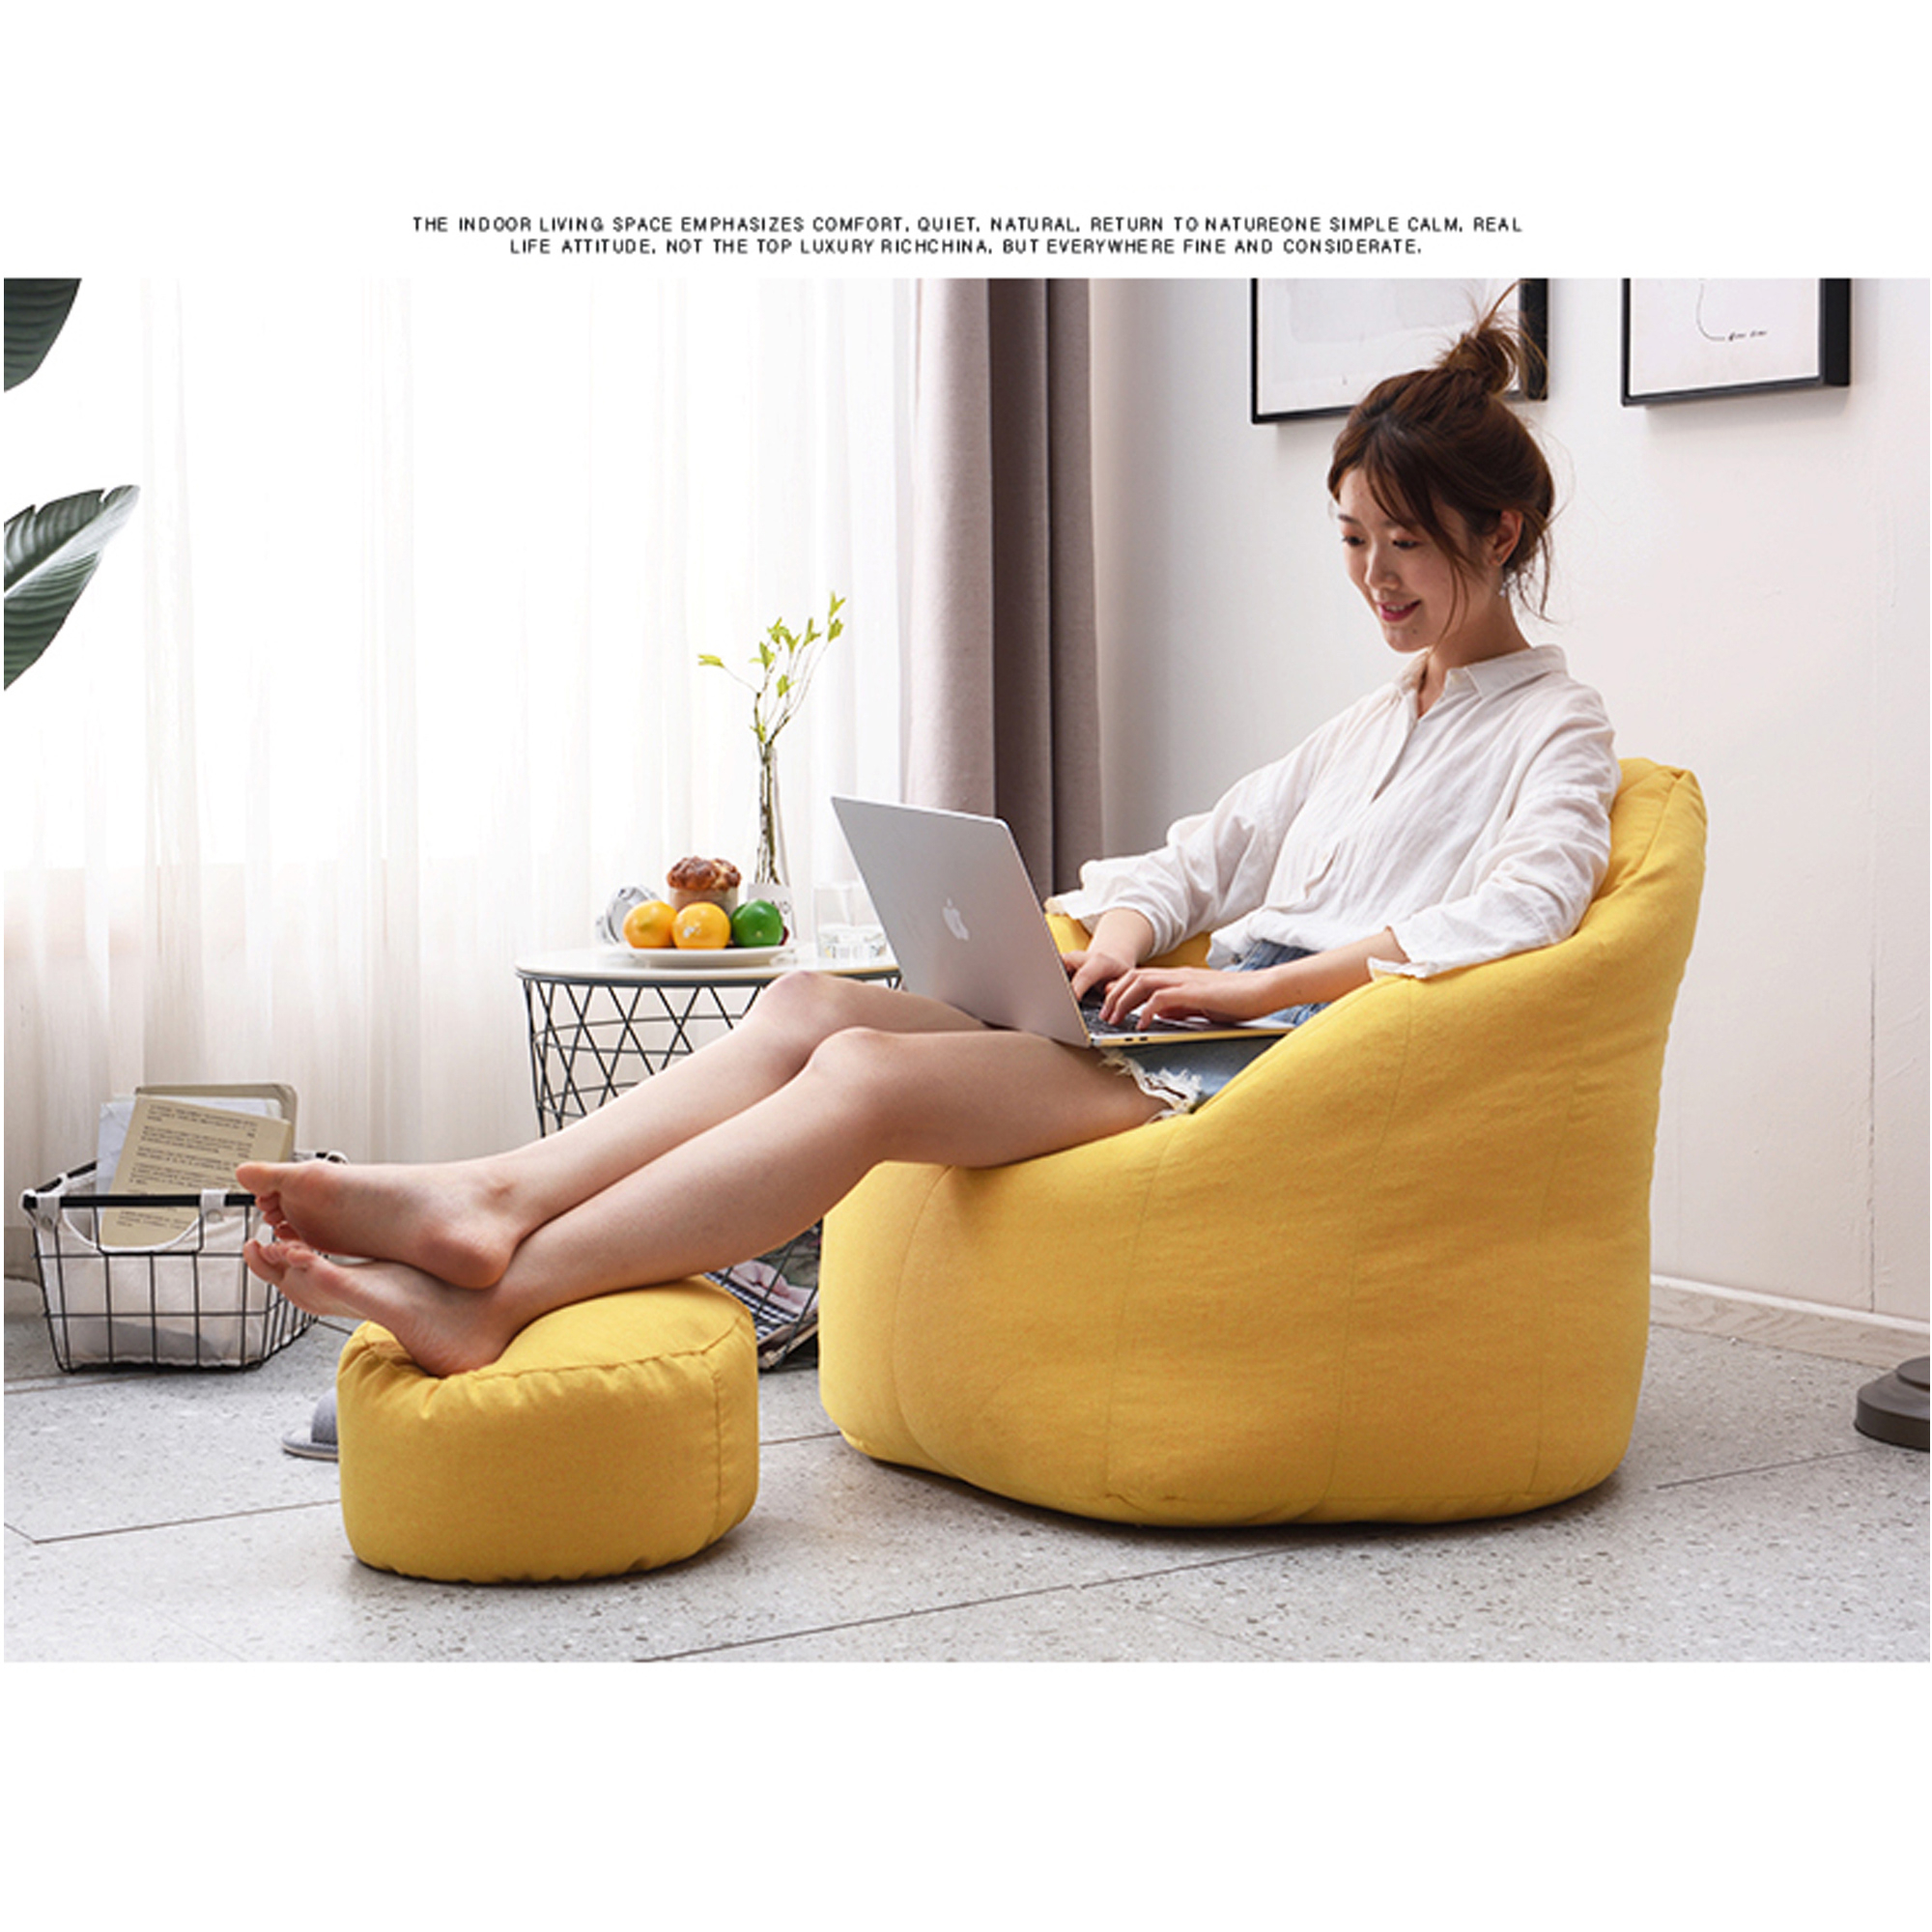 Large Bean Bag Sofa Cover (Just Cover) Lounger Chair Sofa Pertaining To Bean Bag Sofas And Chairs (Photo 5 of 15)